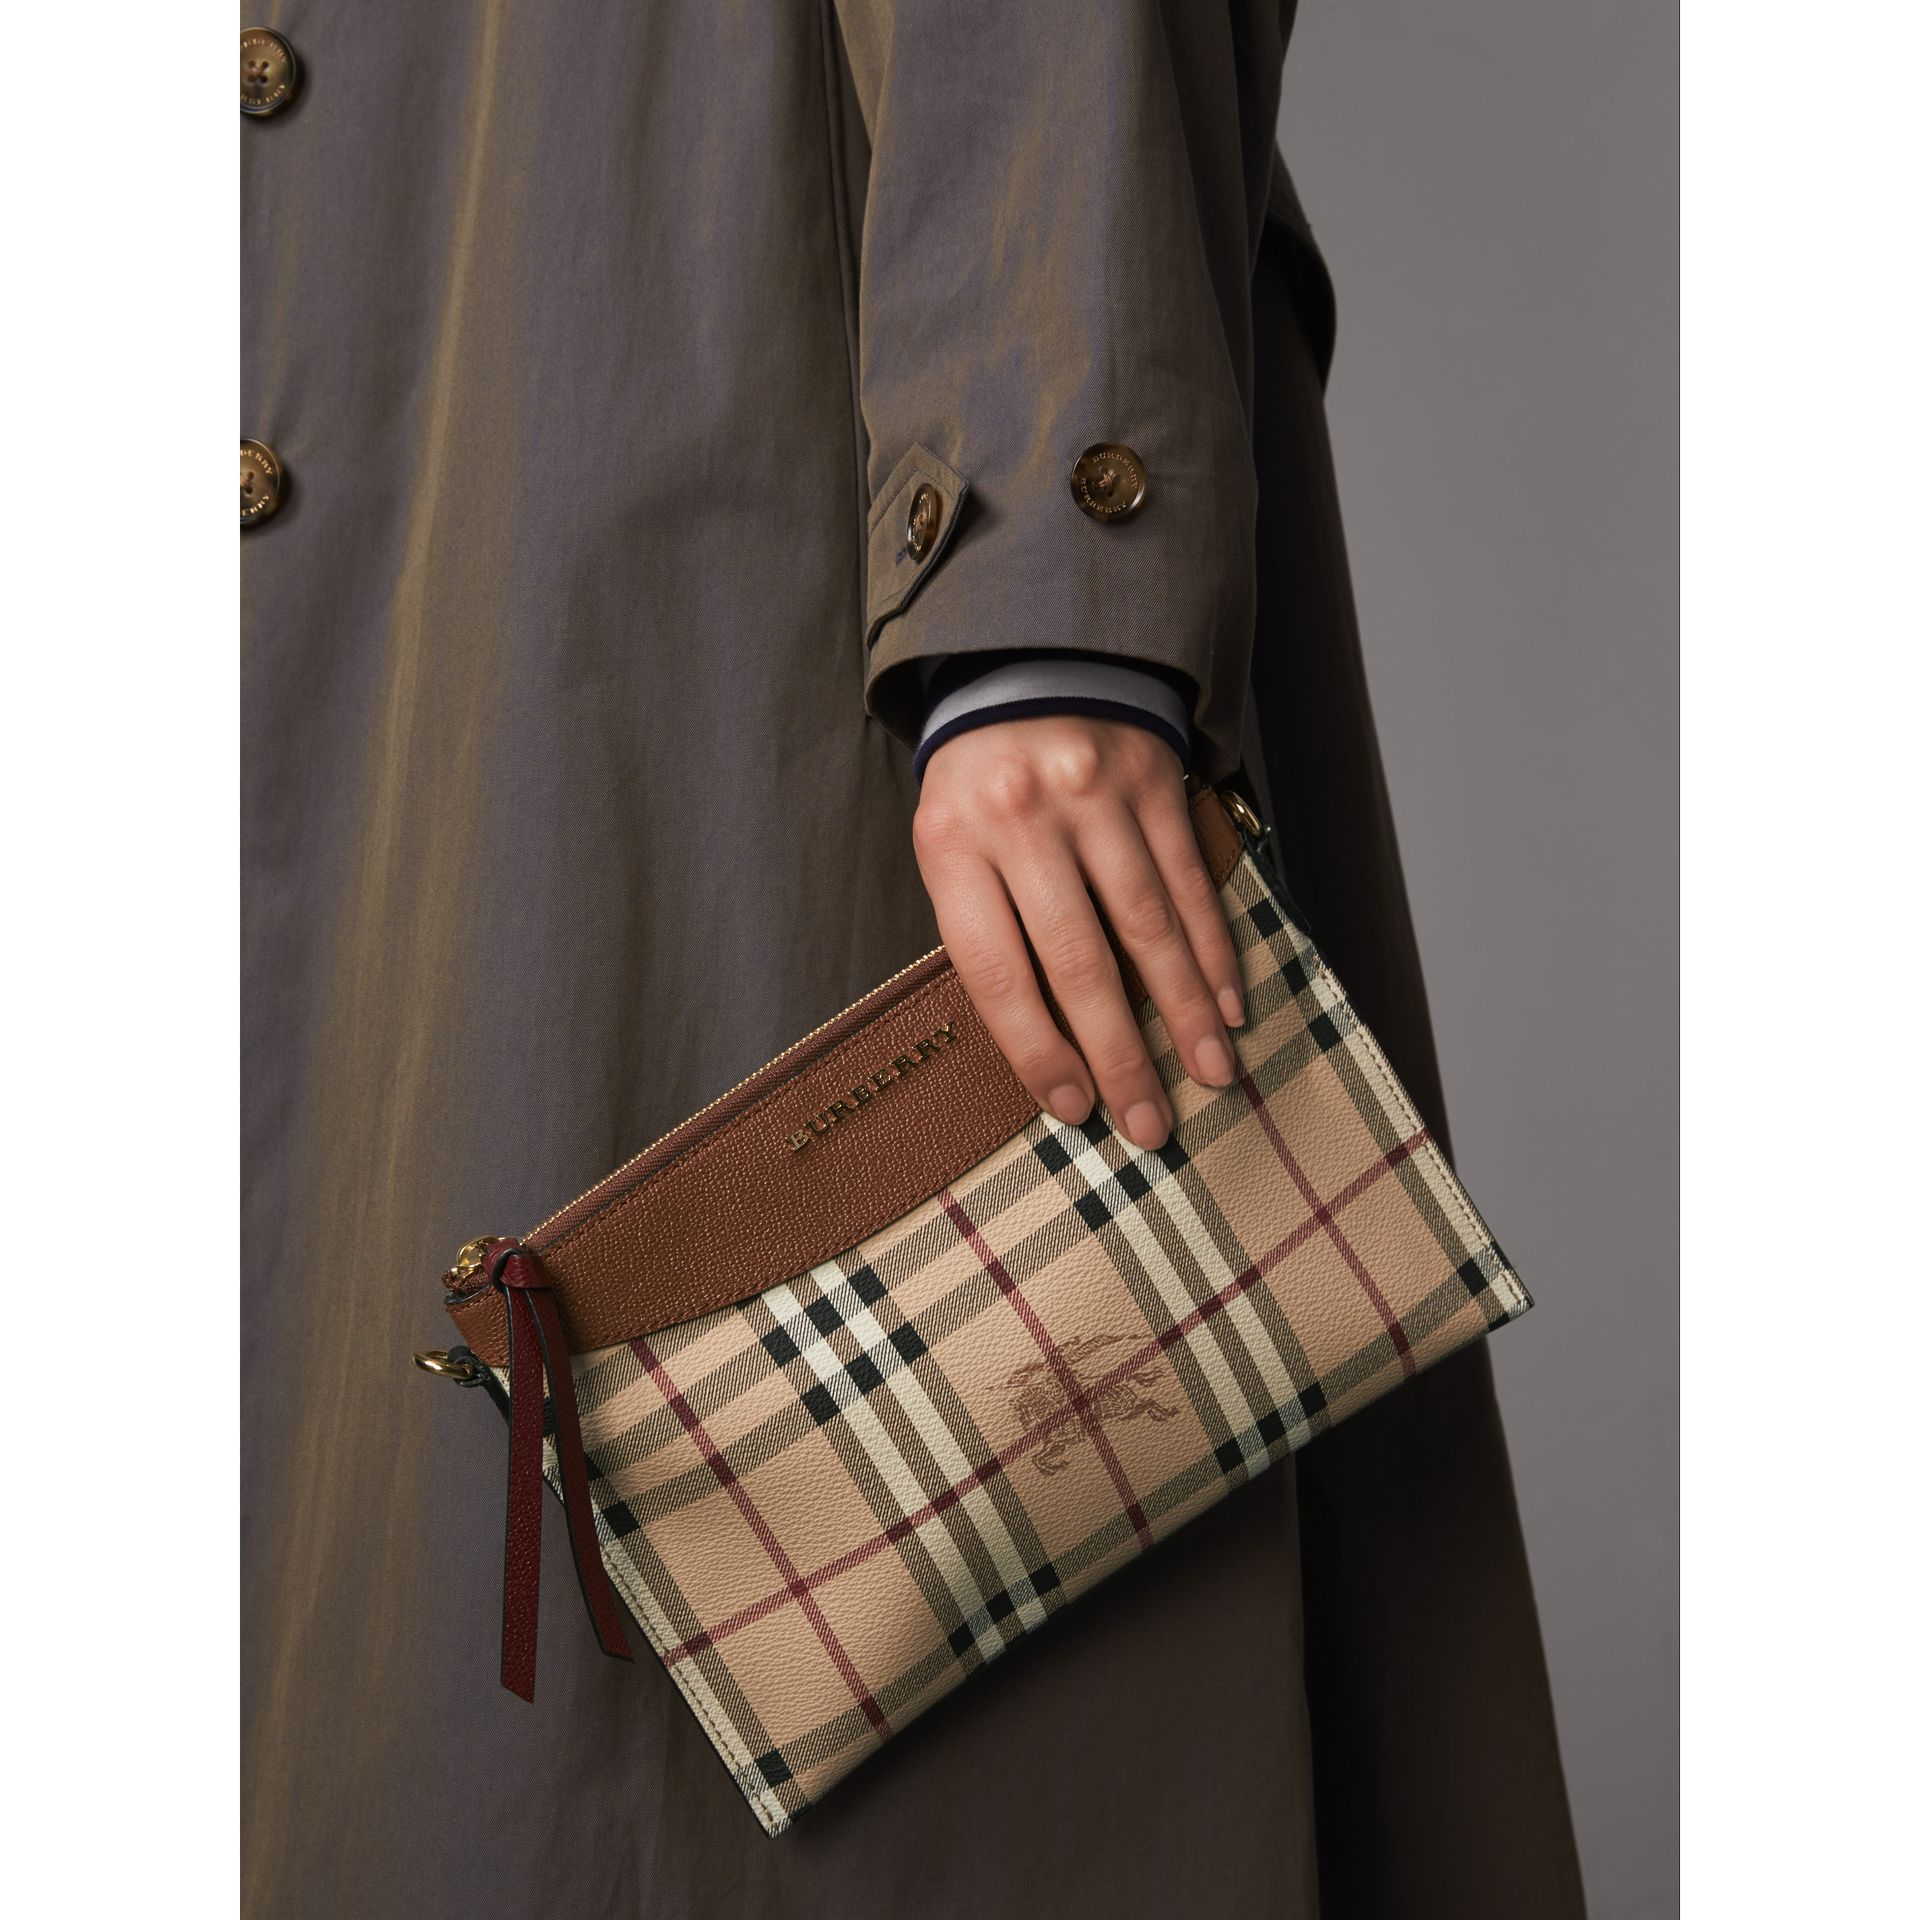 Haymarket Check and Two-tone Leather Clutch Bag in Bright Toffee/ Multicolour - Women | Burberry - gallery image 4